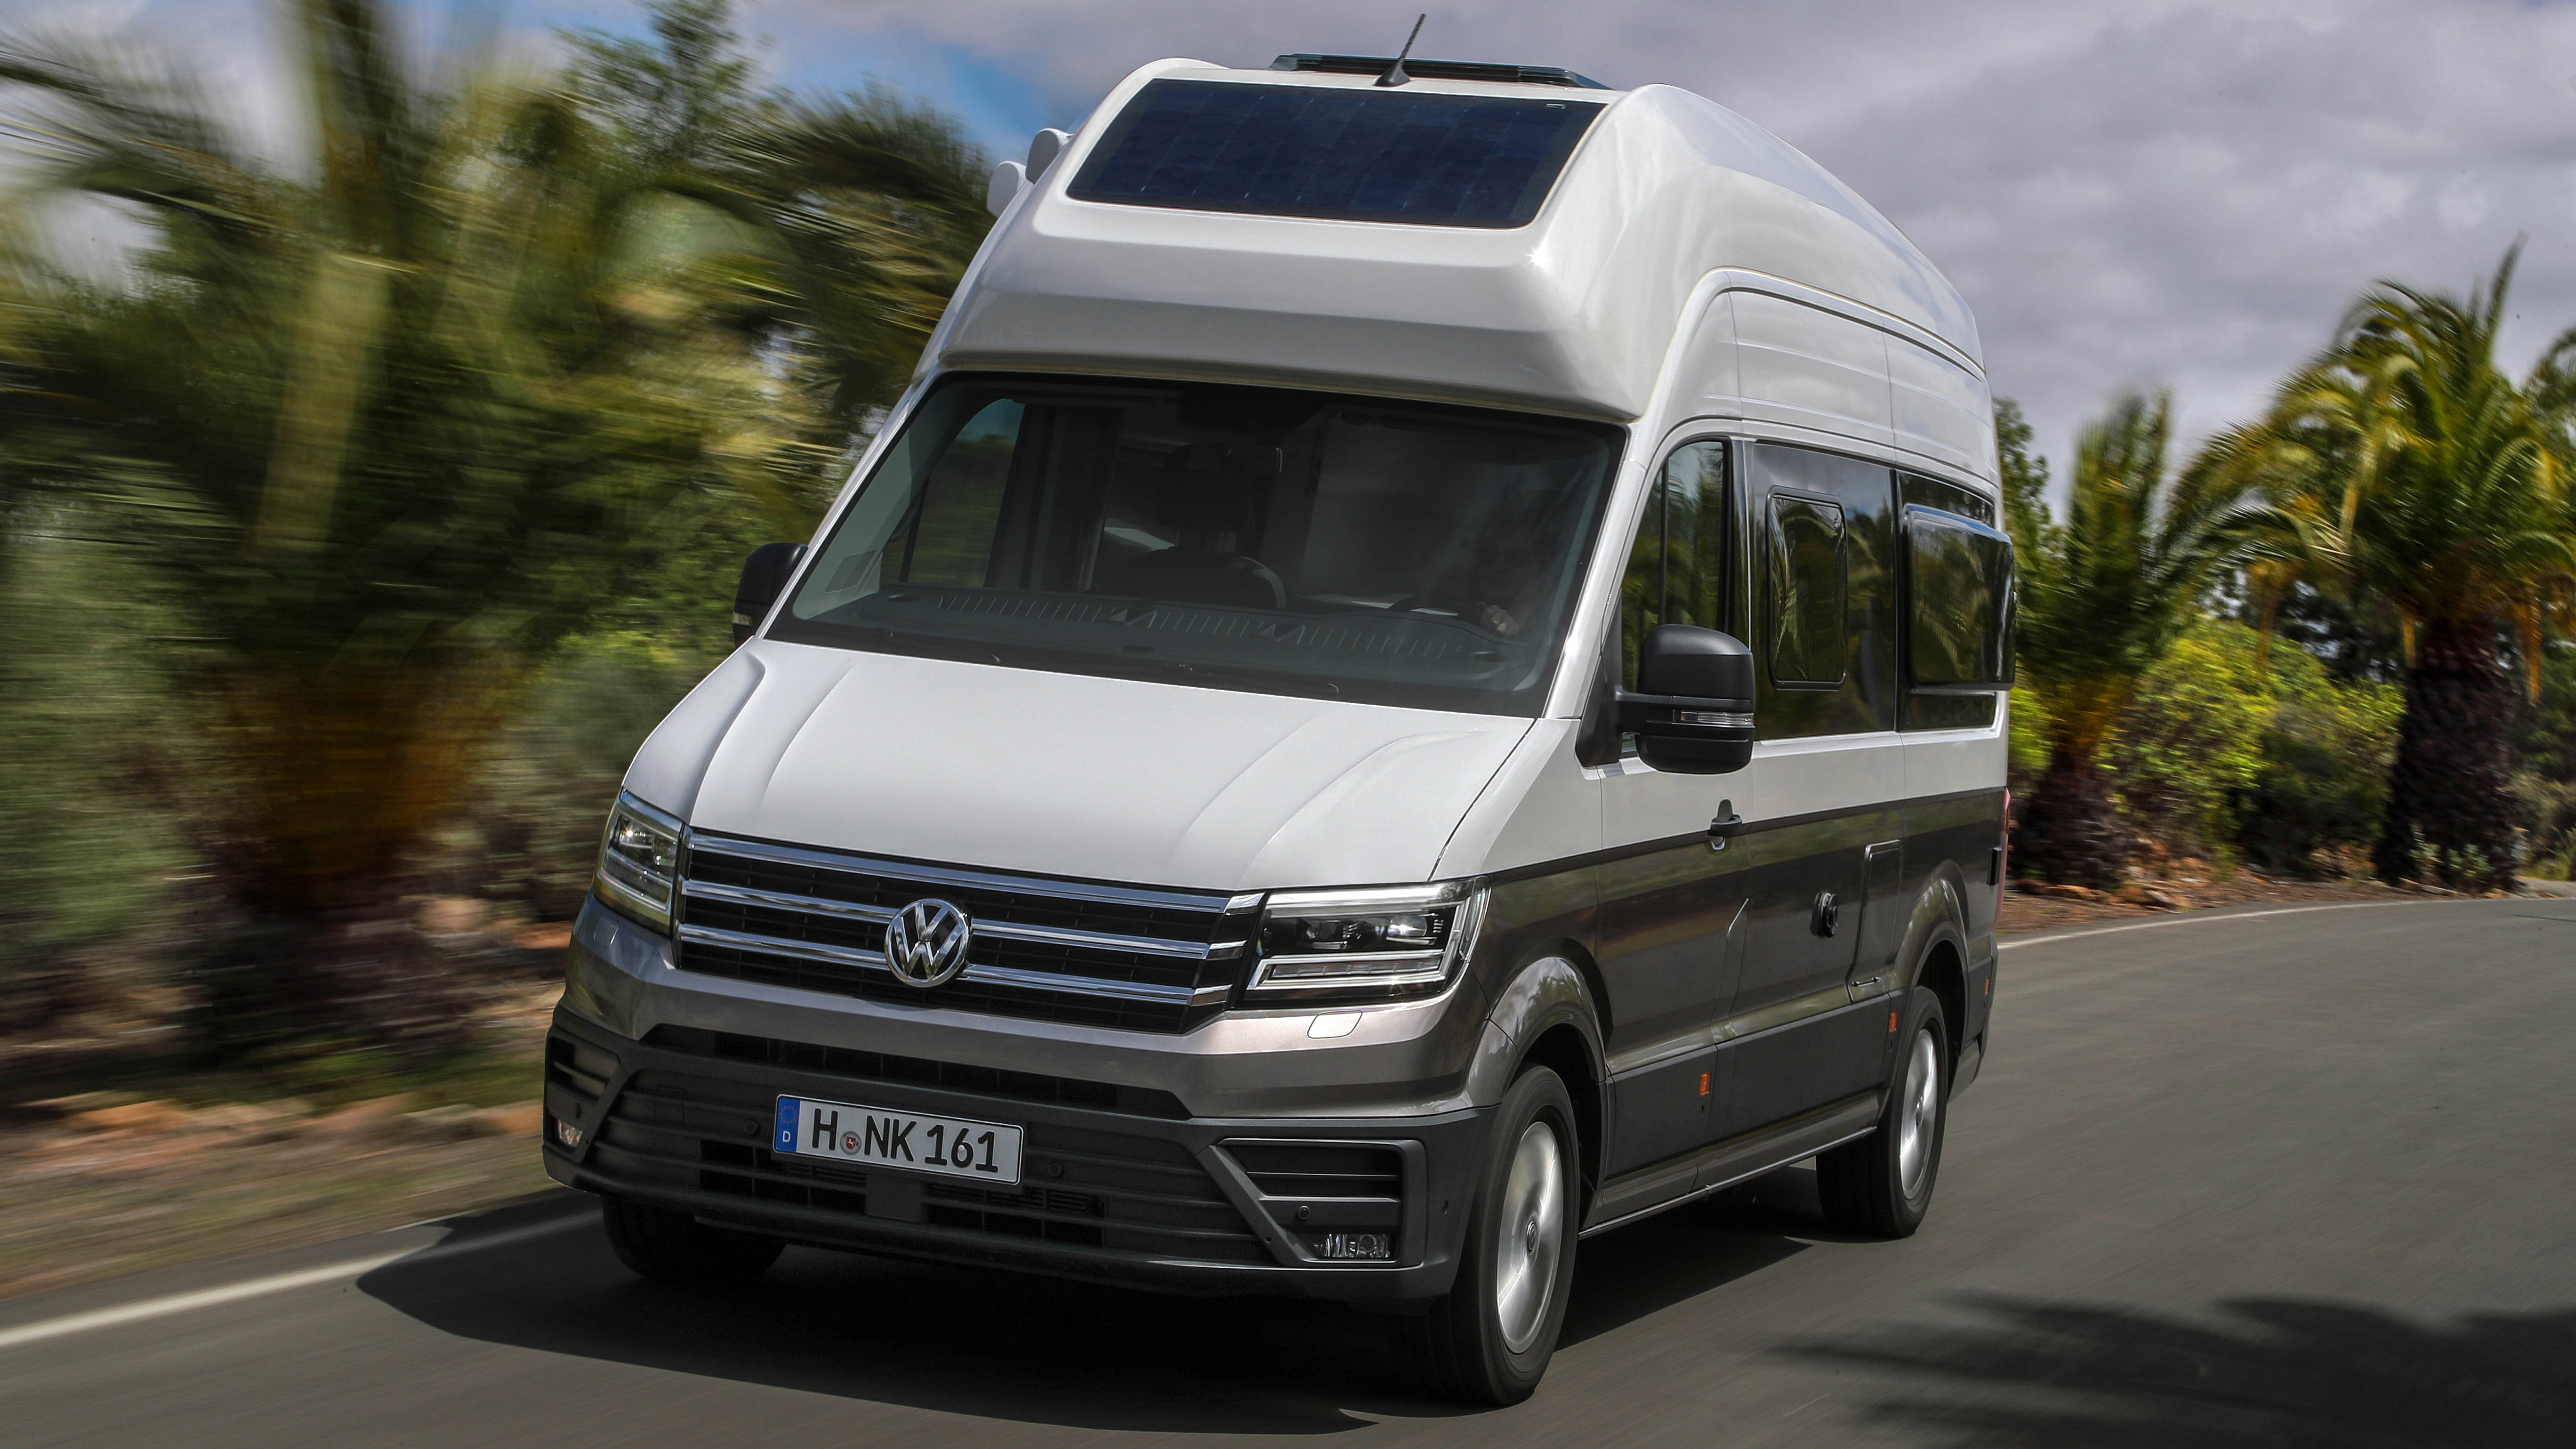 Volkswagen Grand California review: the best camper van